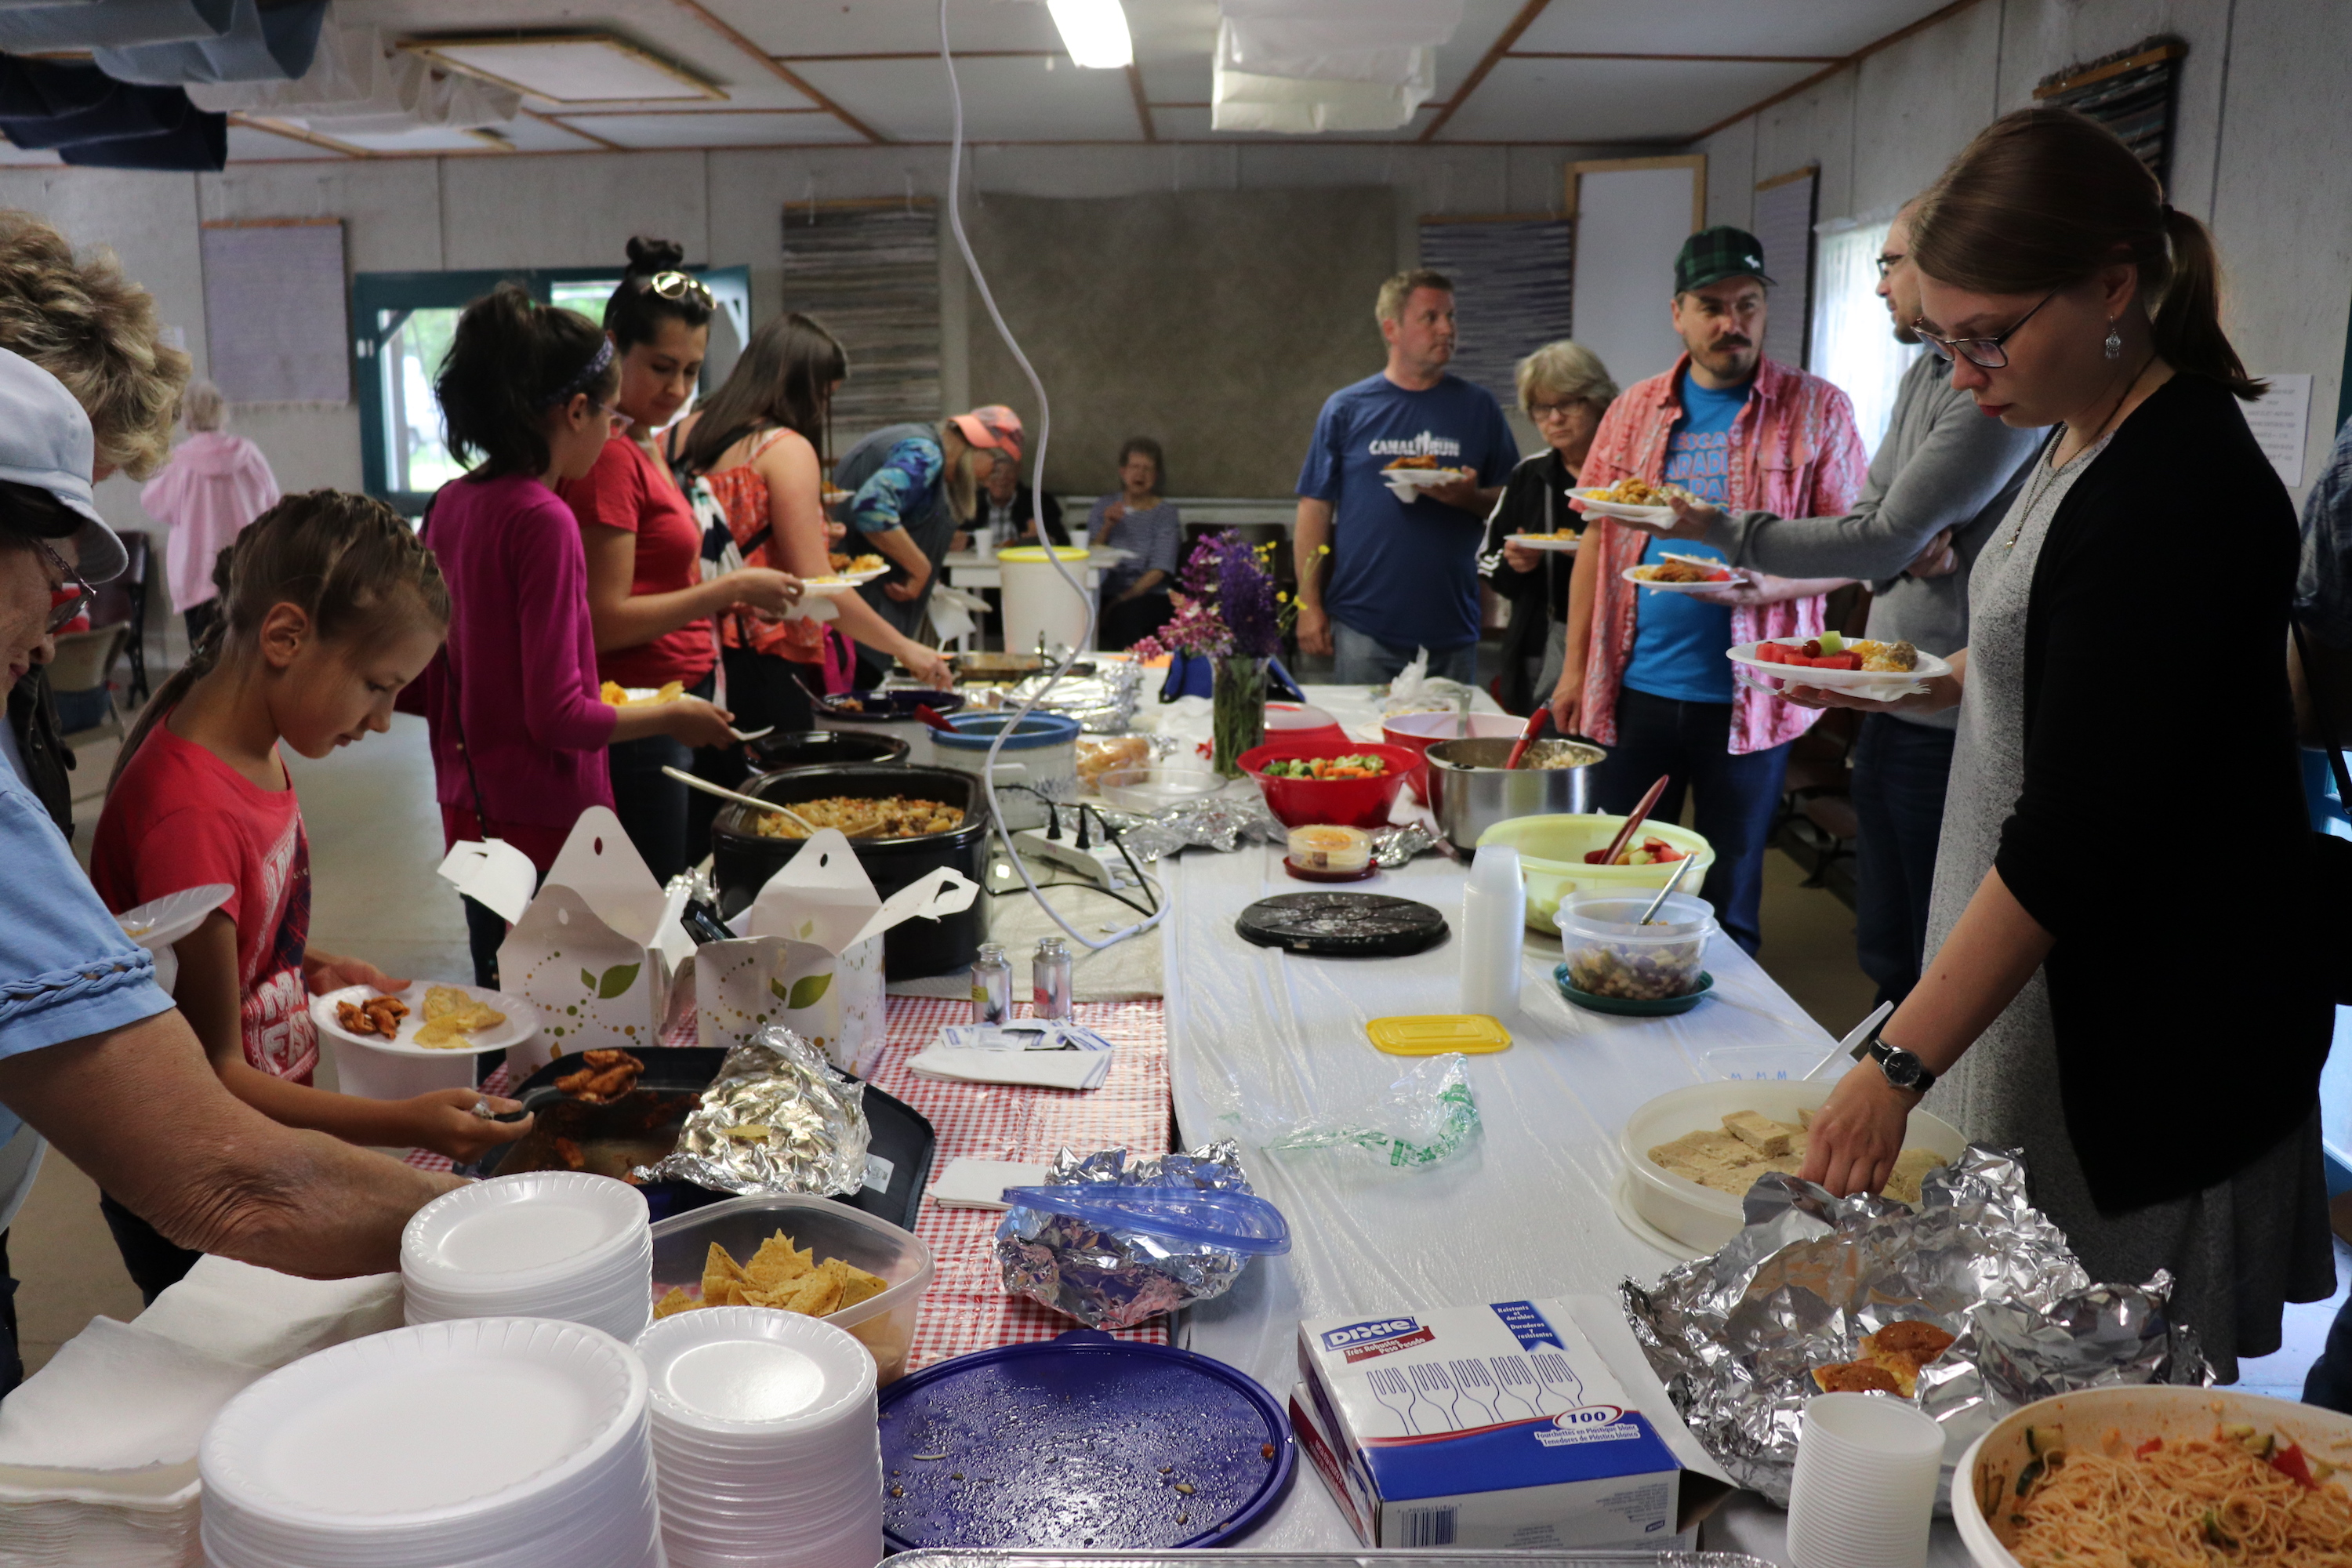 People fill their plates with food from the potluck before the bonfire.